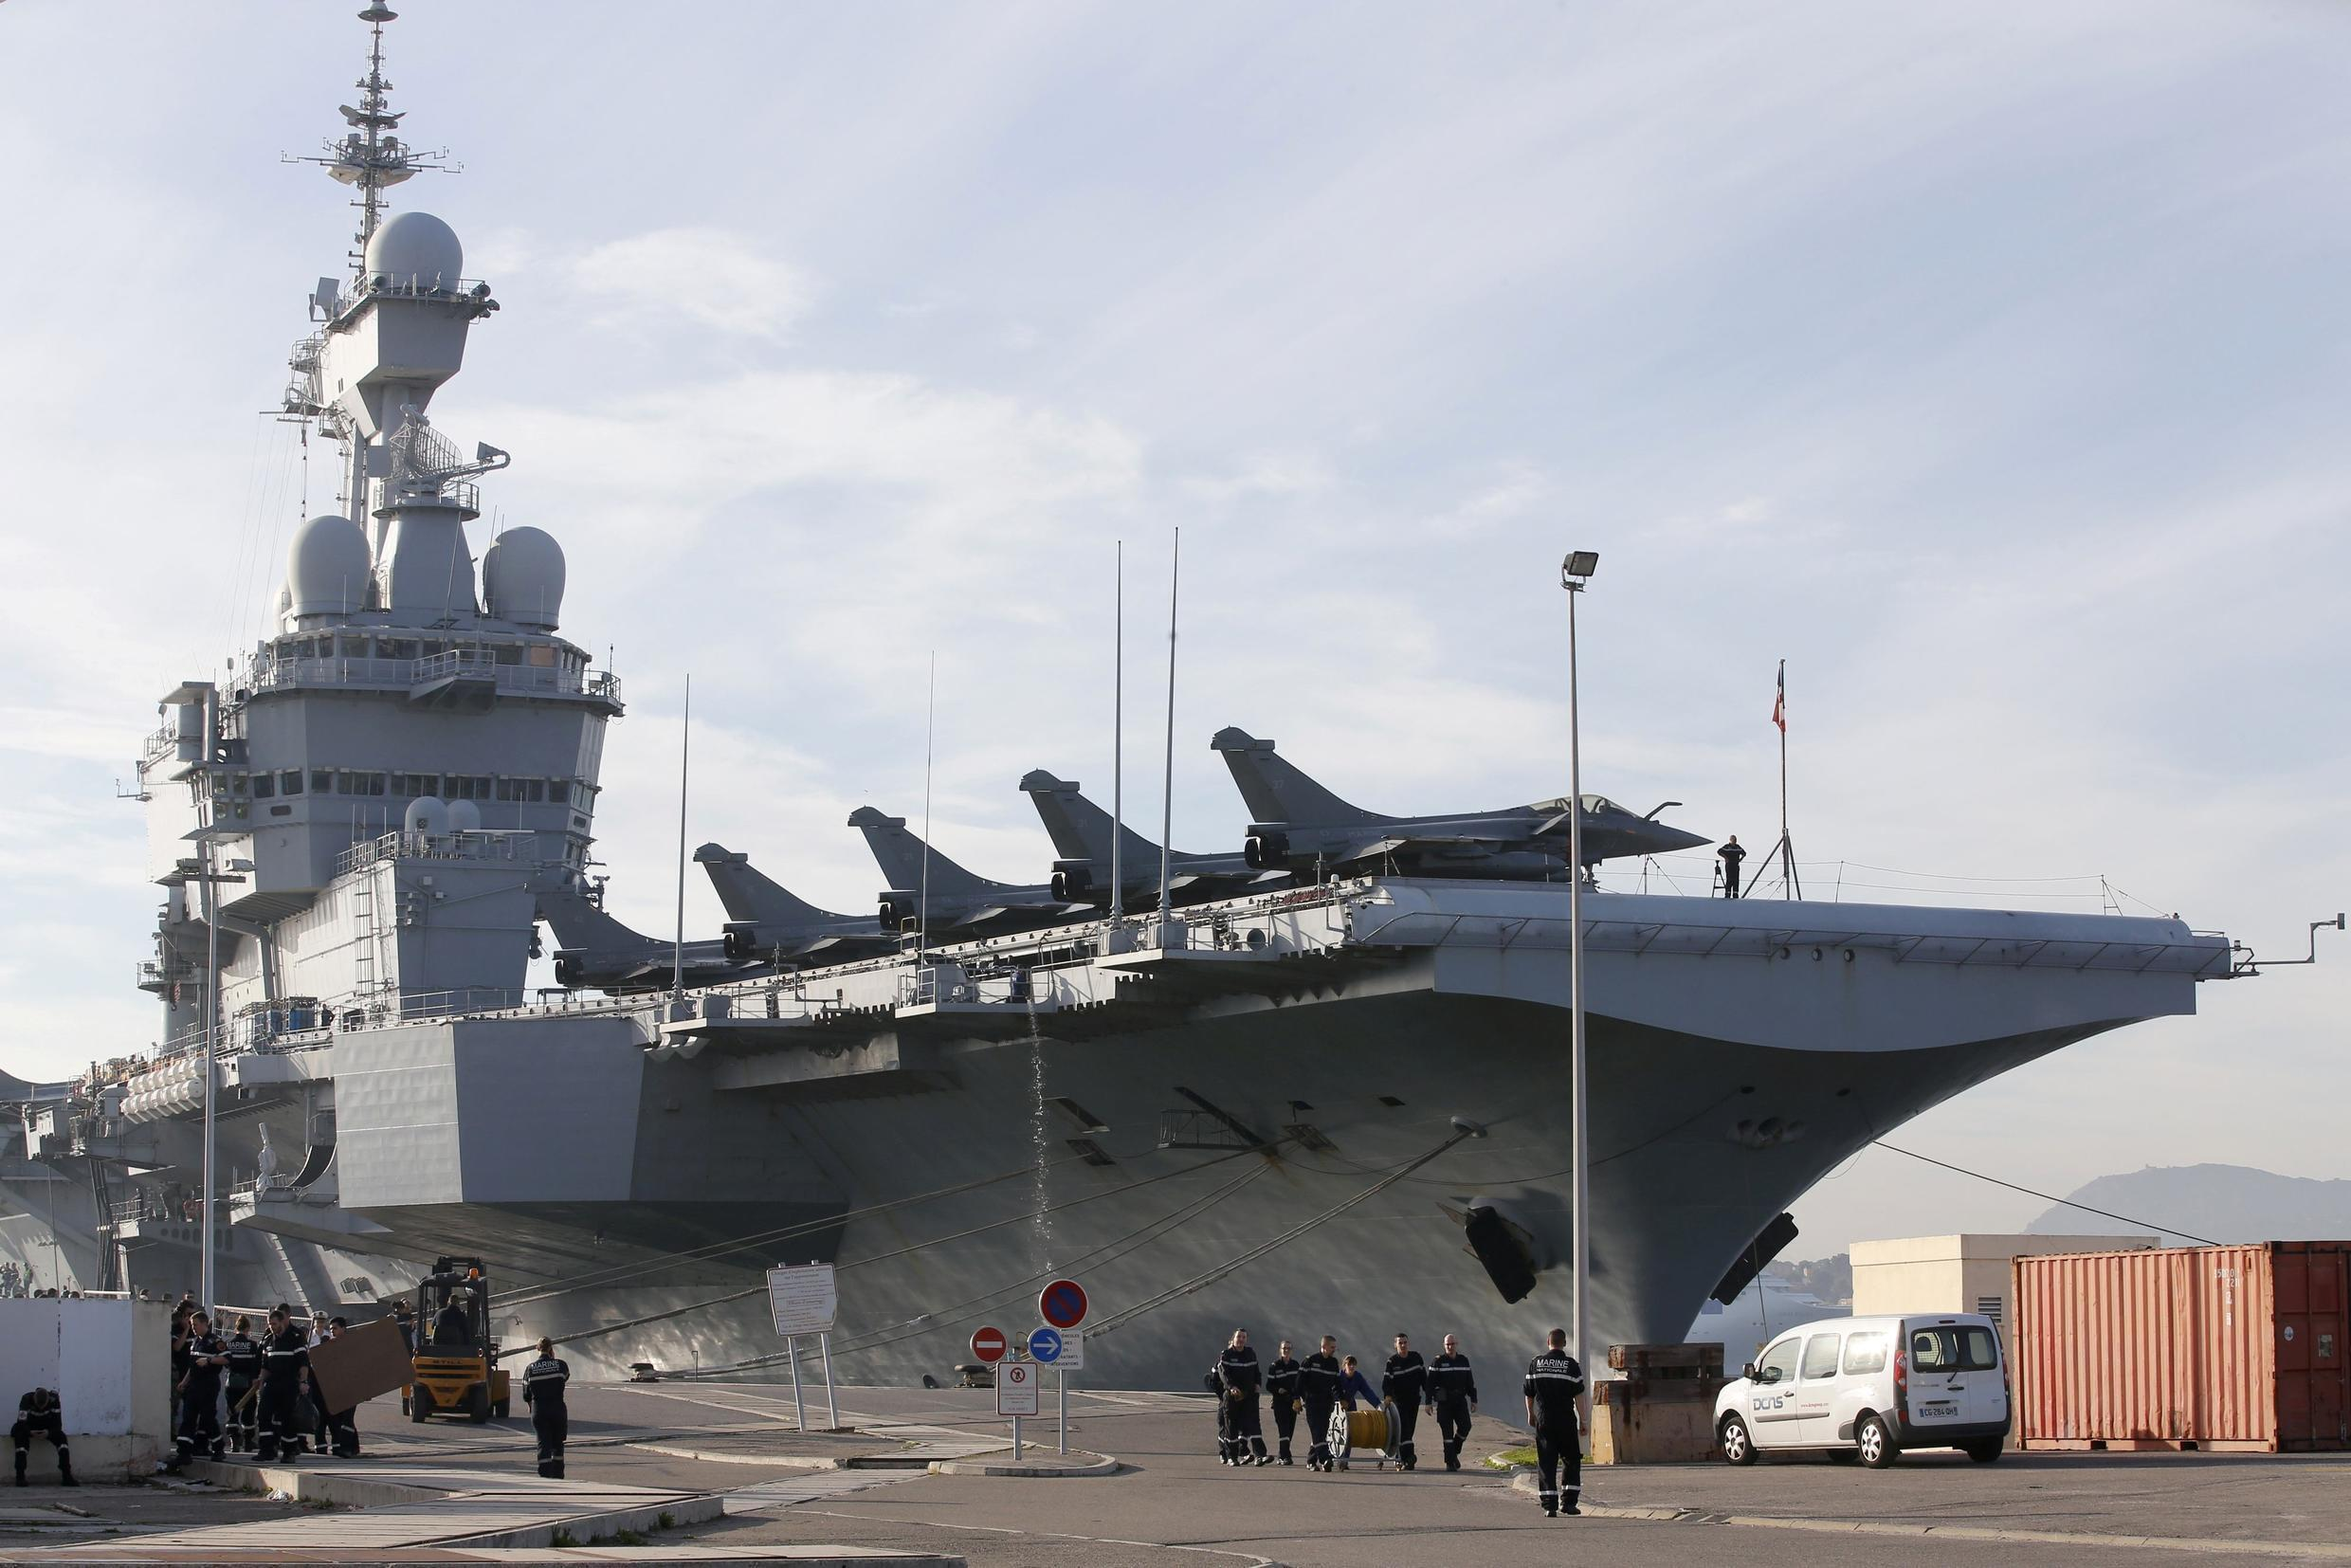 File photo of  the Charles-de-Gaulle aircraft carrier